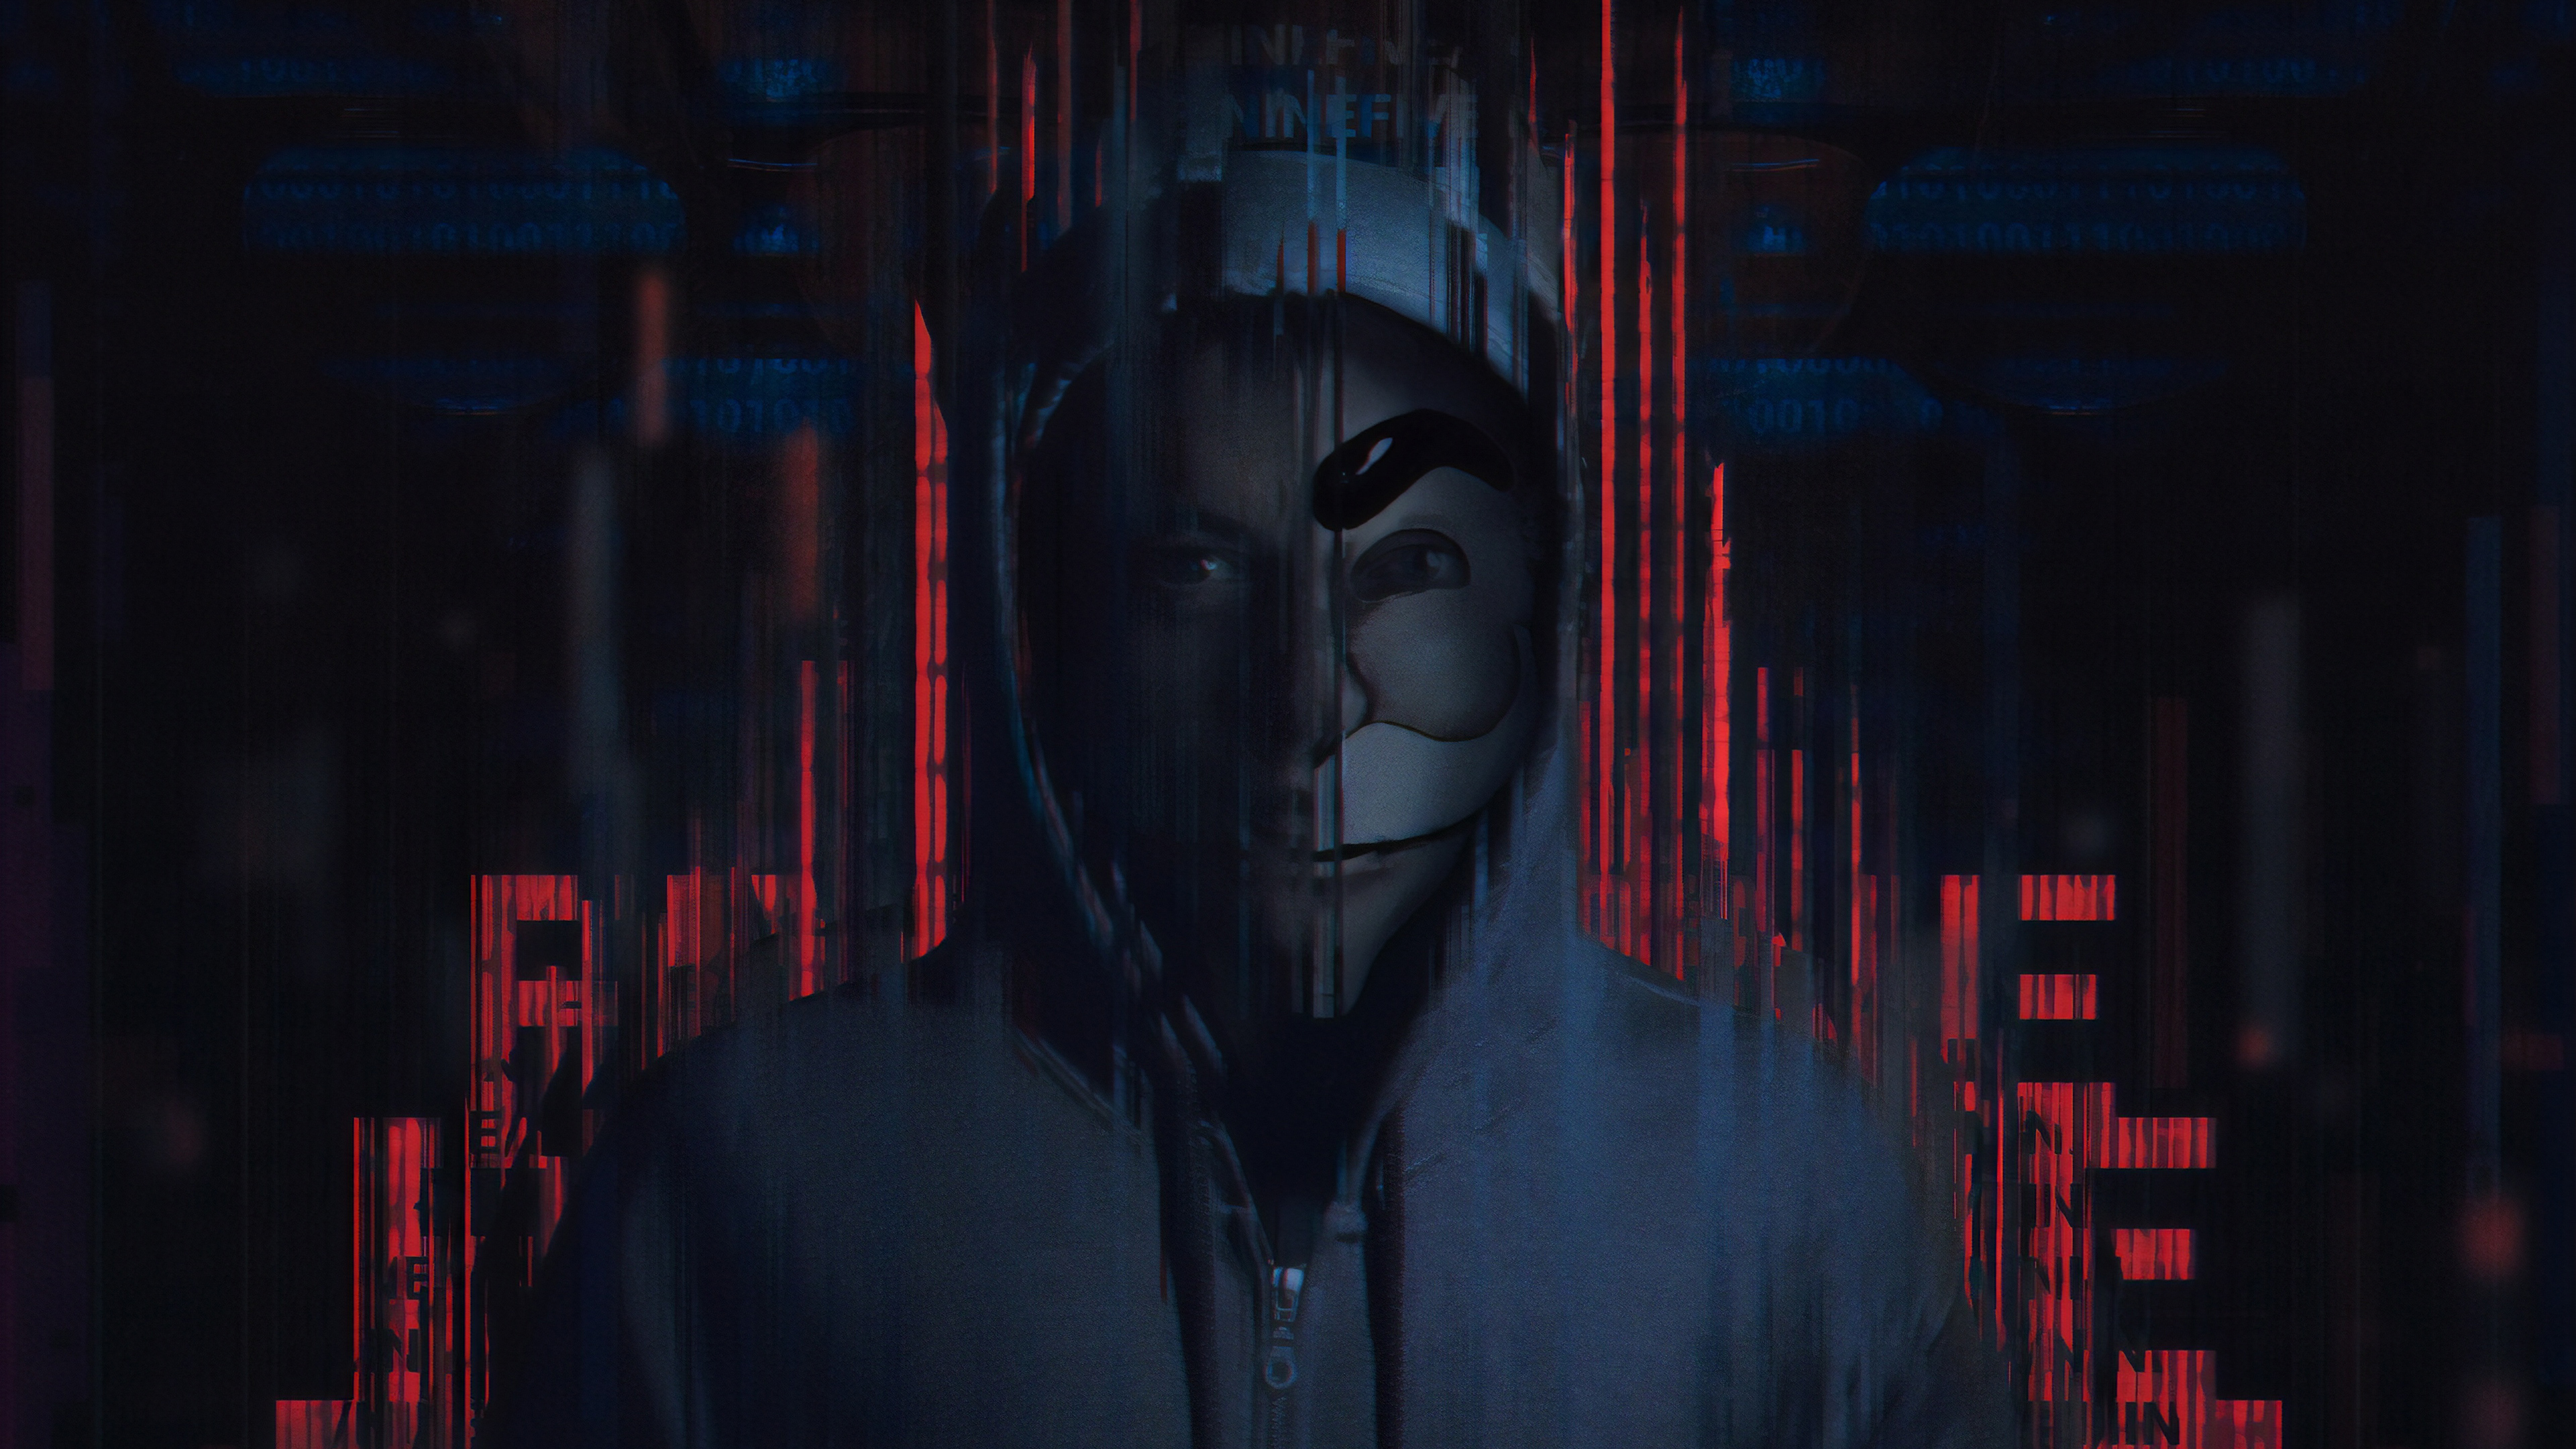 Mr Robot Wallpaper Android